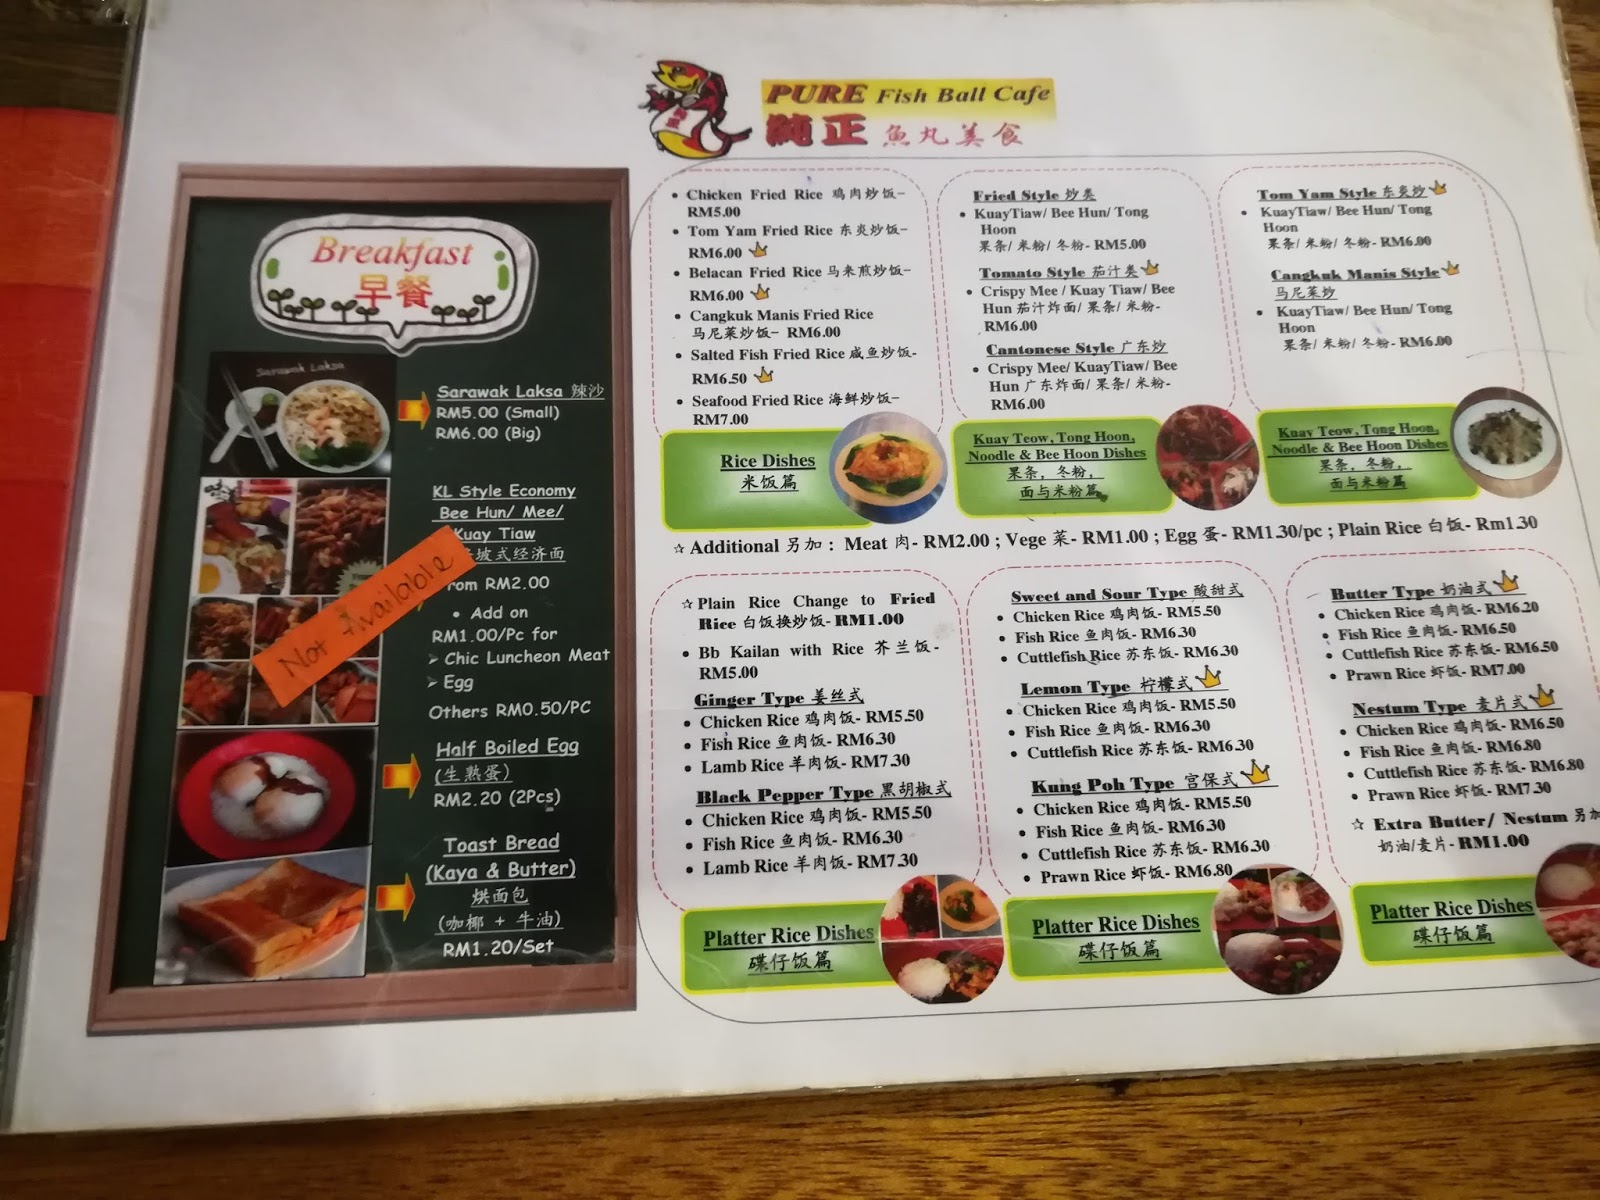 Malaysia food blog kuching based pure fish ball cafe for Oak city fish and chips menu